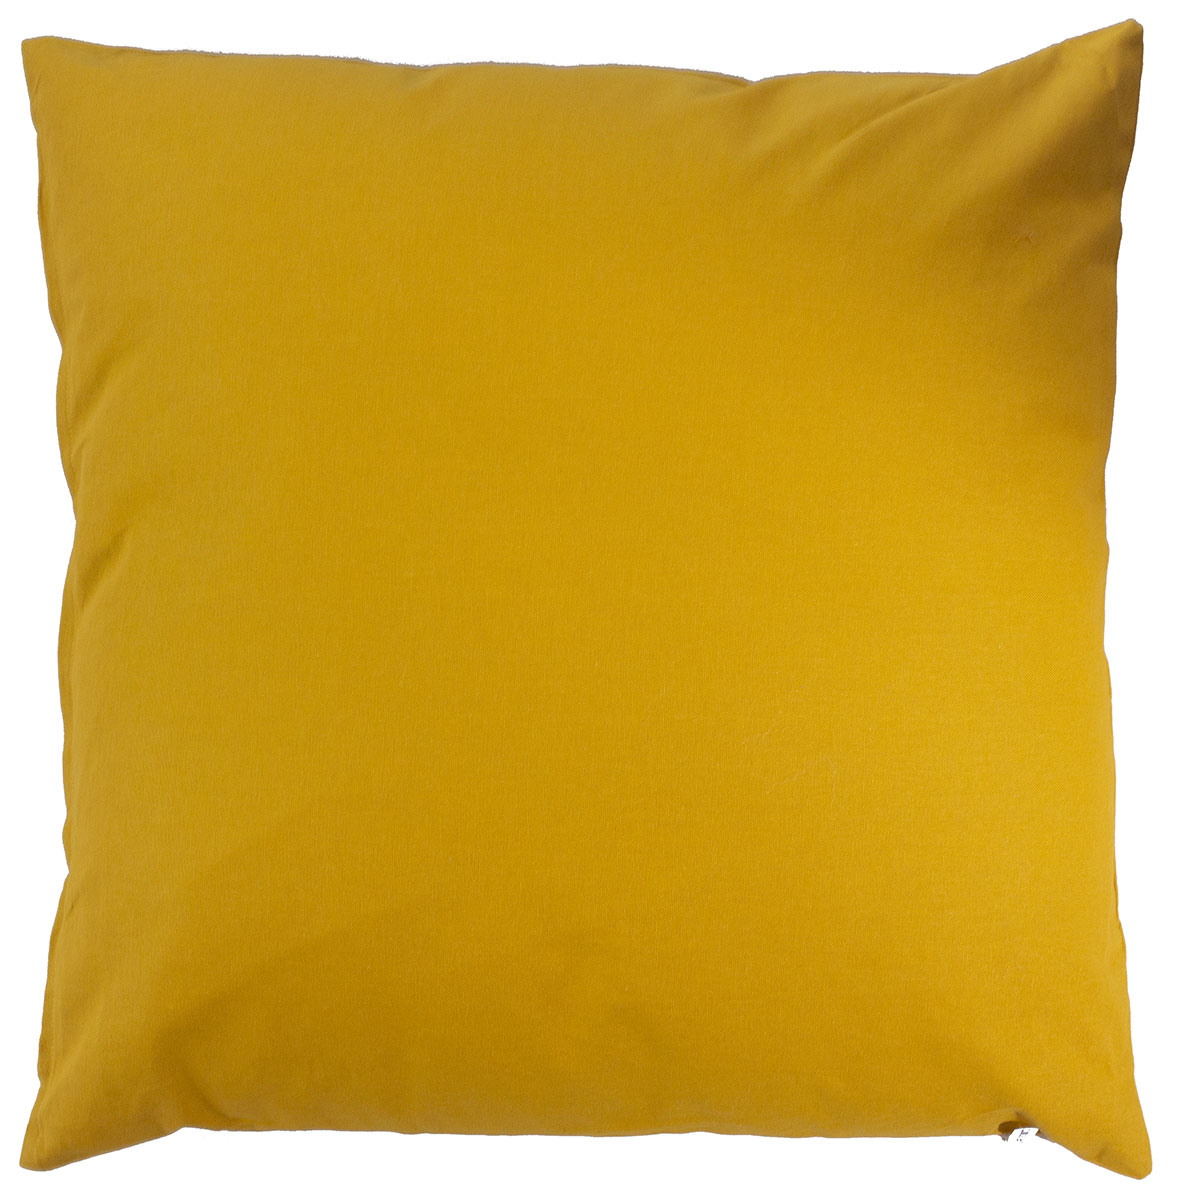 Coussin déhoussable uni en coton   (Moutarde)